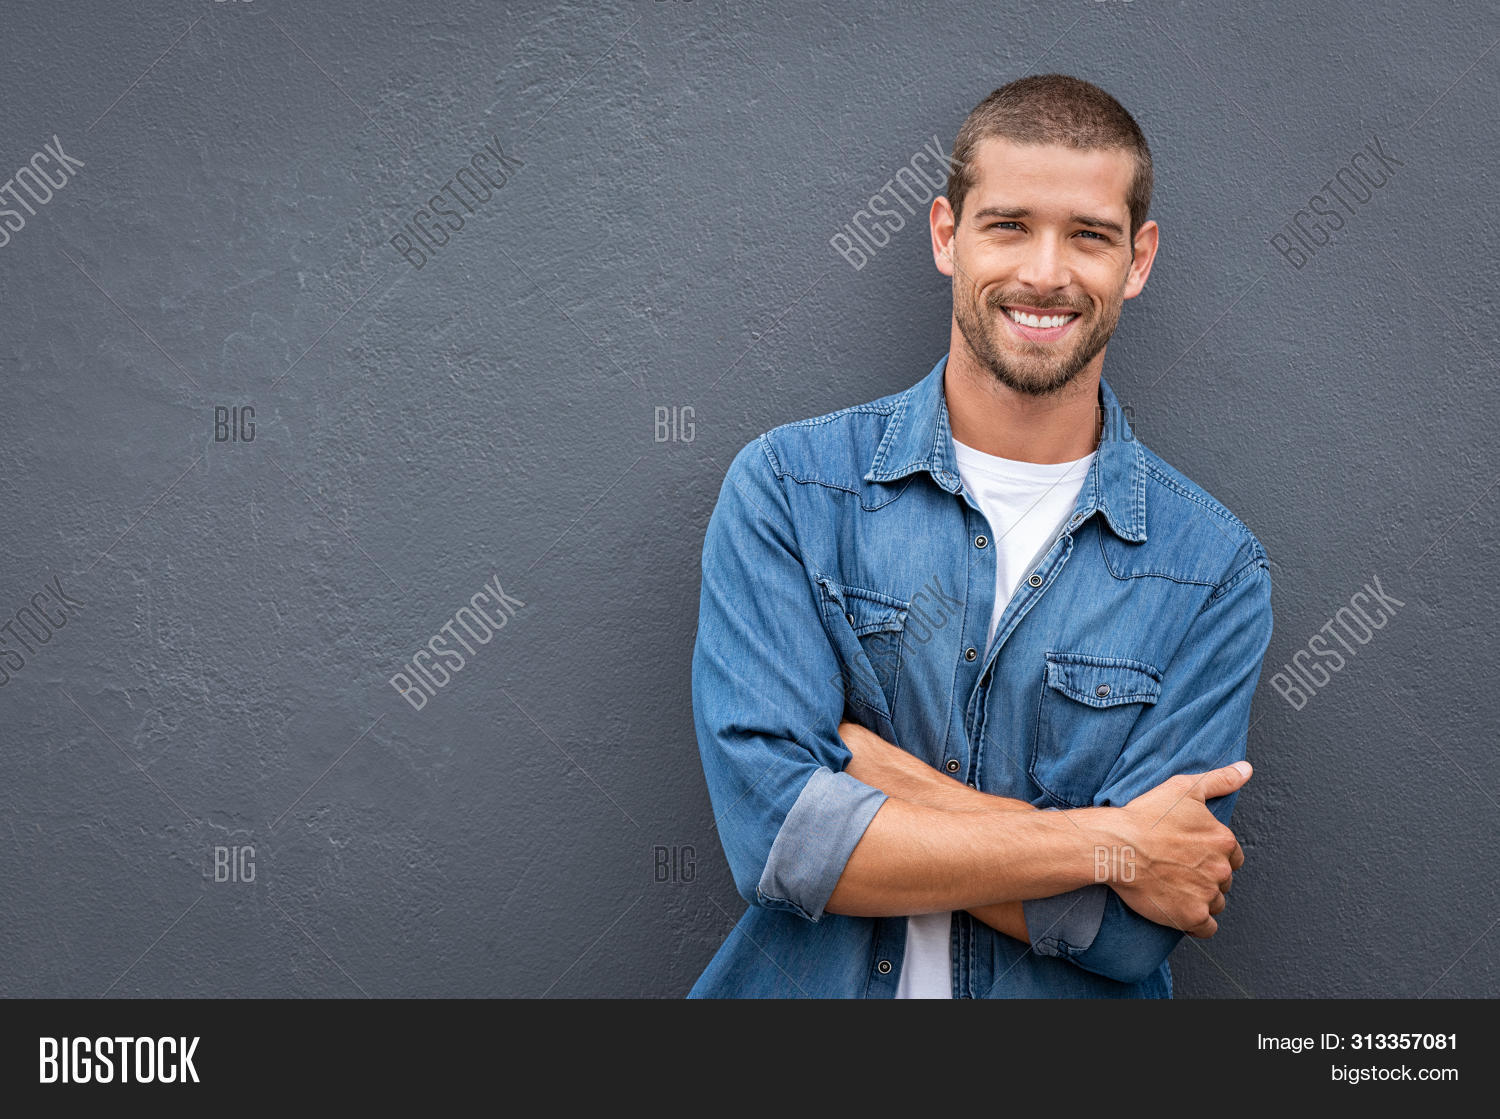 arm,background,carefree,casual,cheerful,confident,cool,cool guy,copy space,crossed,crossed arms,fashionable,friendly,gray,gray background,grey wall,guy,handsome,handsome man,happy,healthy,isolated,leaning man,looking,looking at camera,people,portrait,positive,pride,proud,satisfaction,satisfied,satisfied man,sincere,smile,standing,studio,stylish,success,successful,toothy smile,wall,young,young man